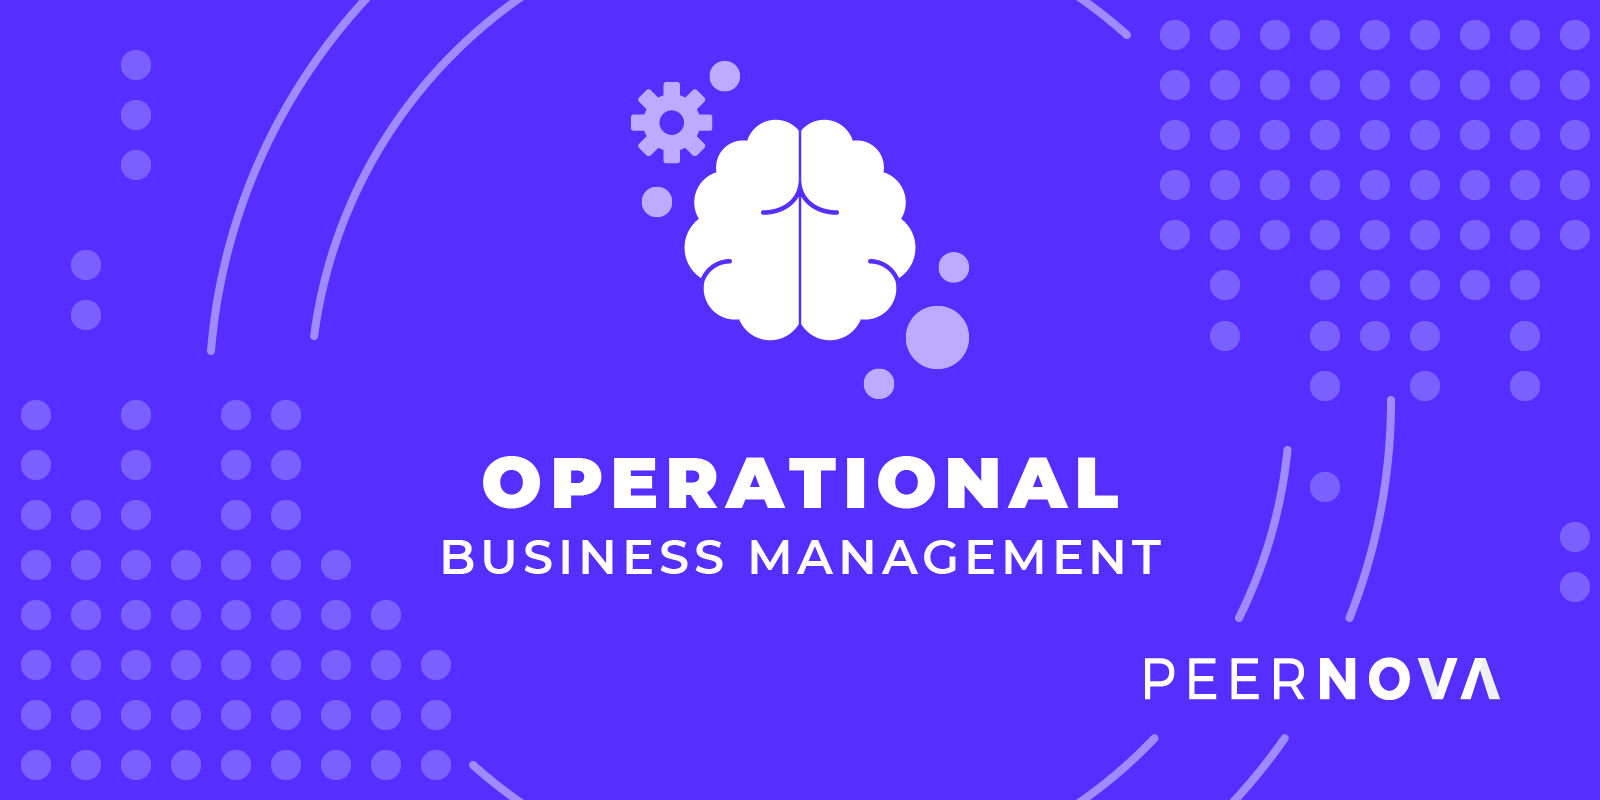 PeerNova's Operational Business Management Tool